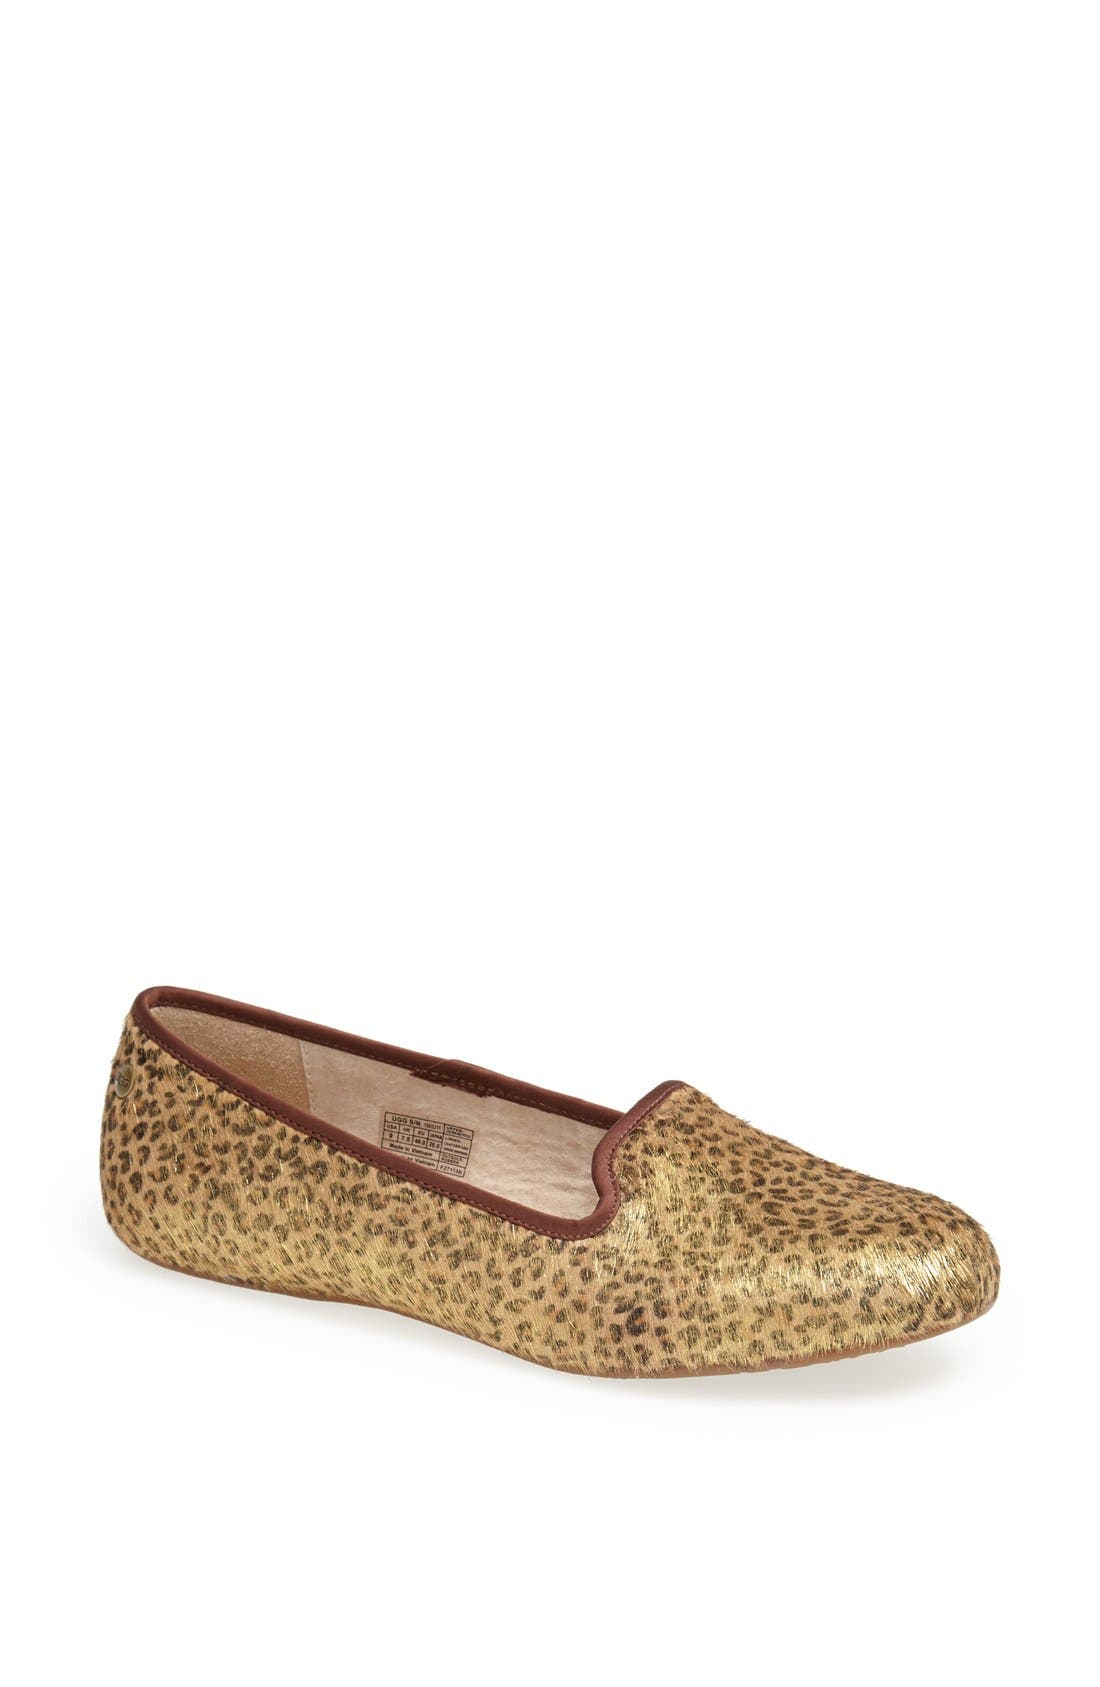 Alternate Image 1 Selected - UGG® Australia 'Alloway' Slipper (Women)